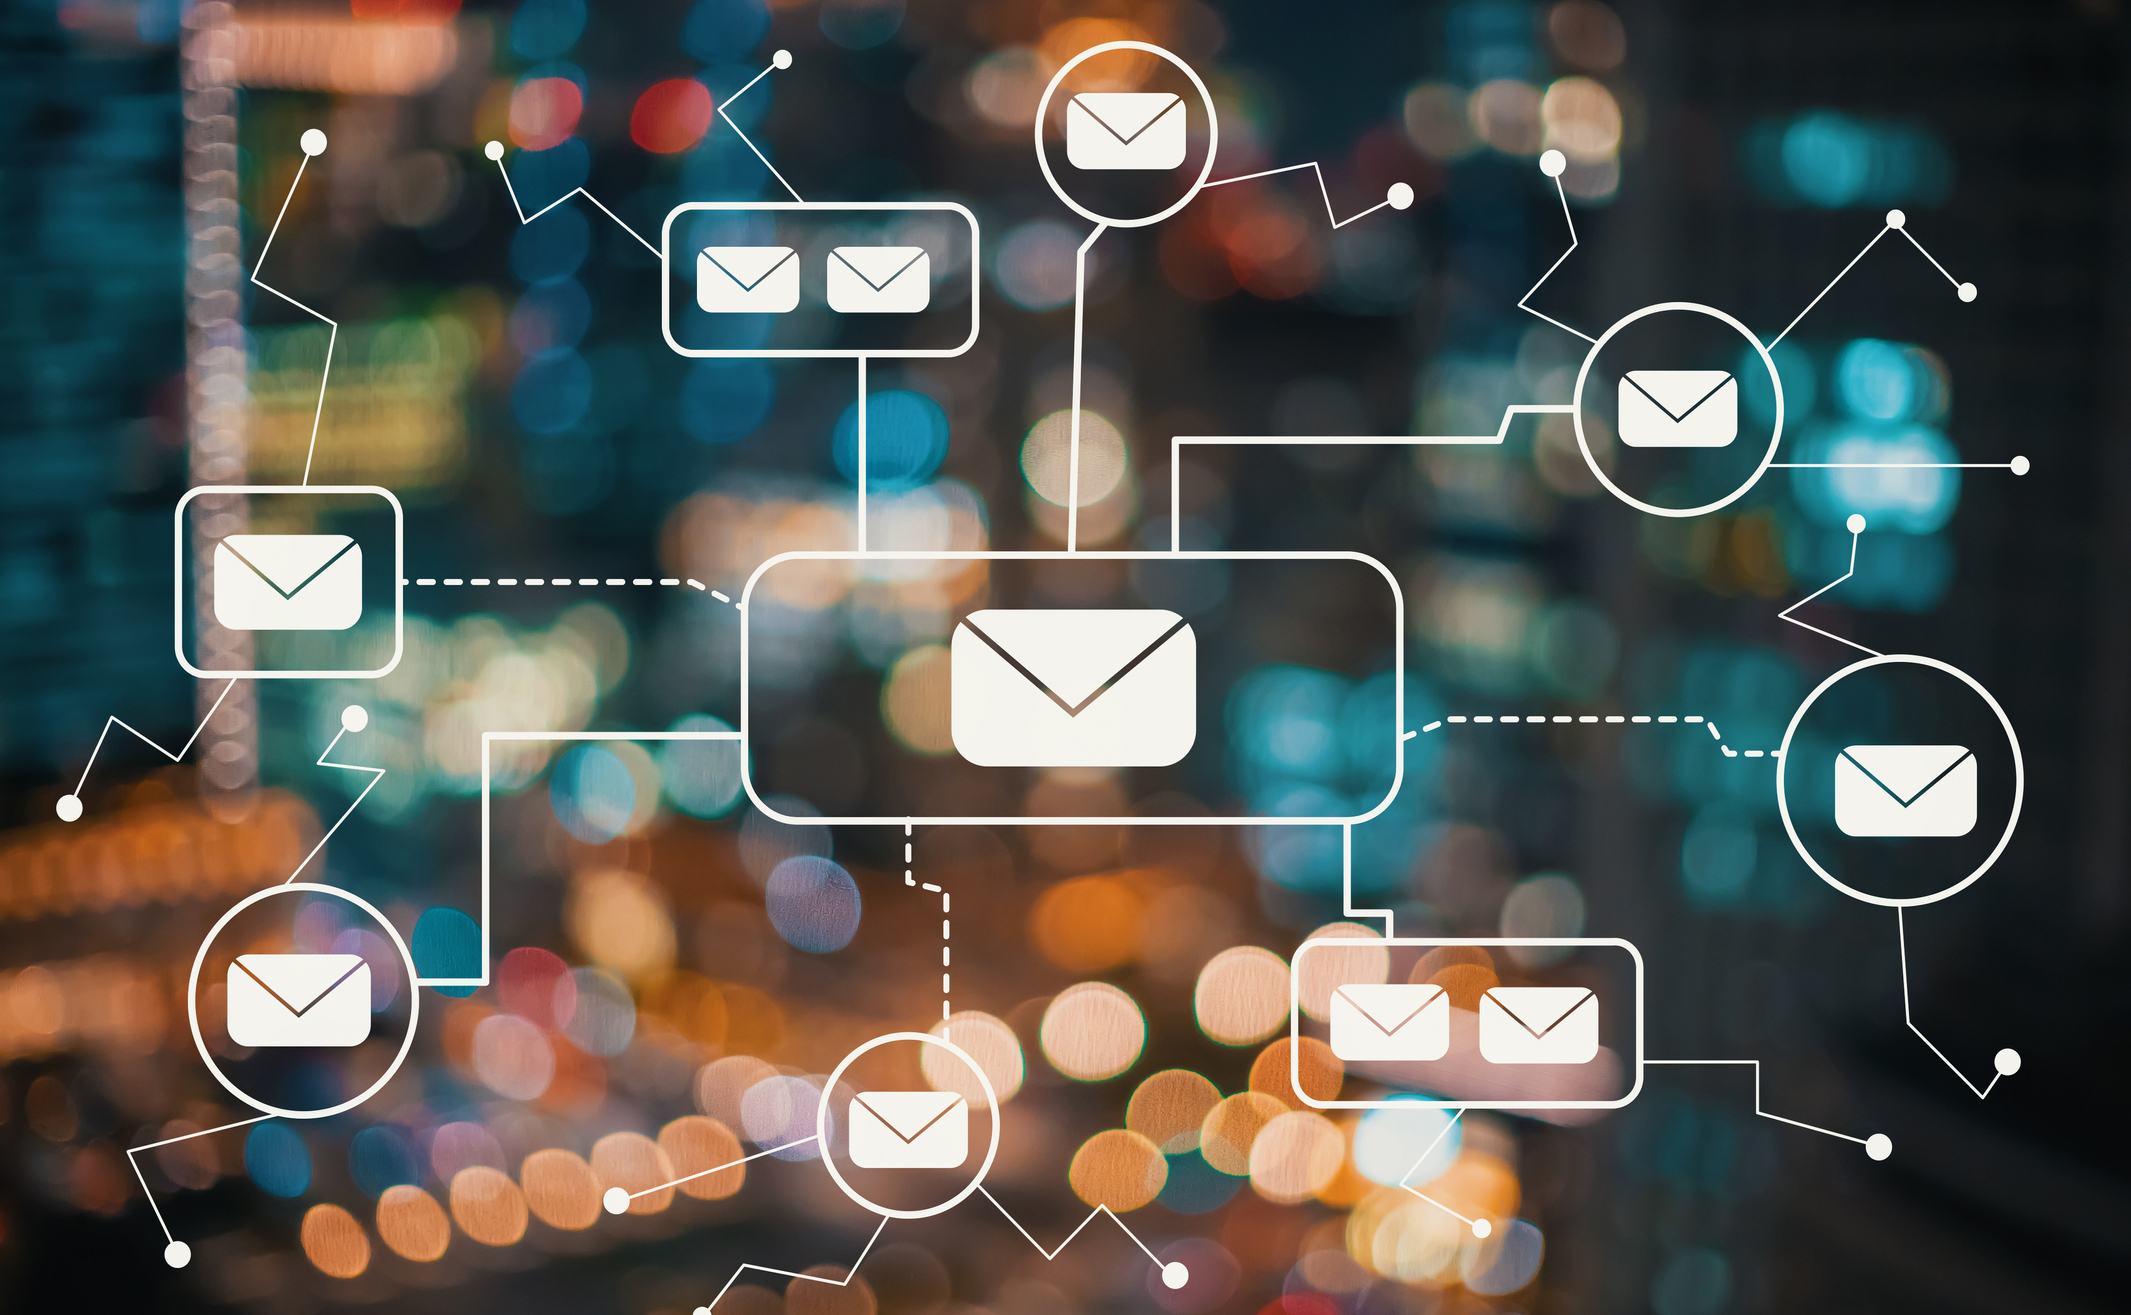 email marketing automation is cost-effective marketing strategy